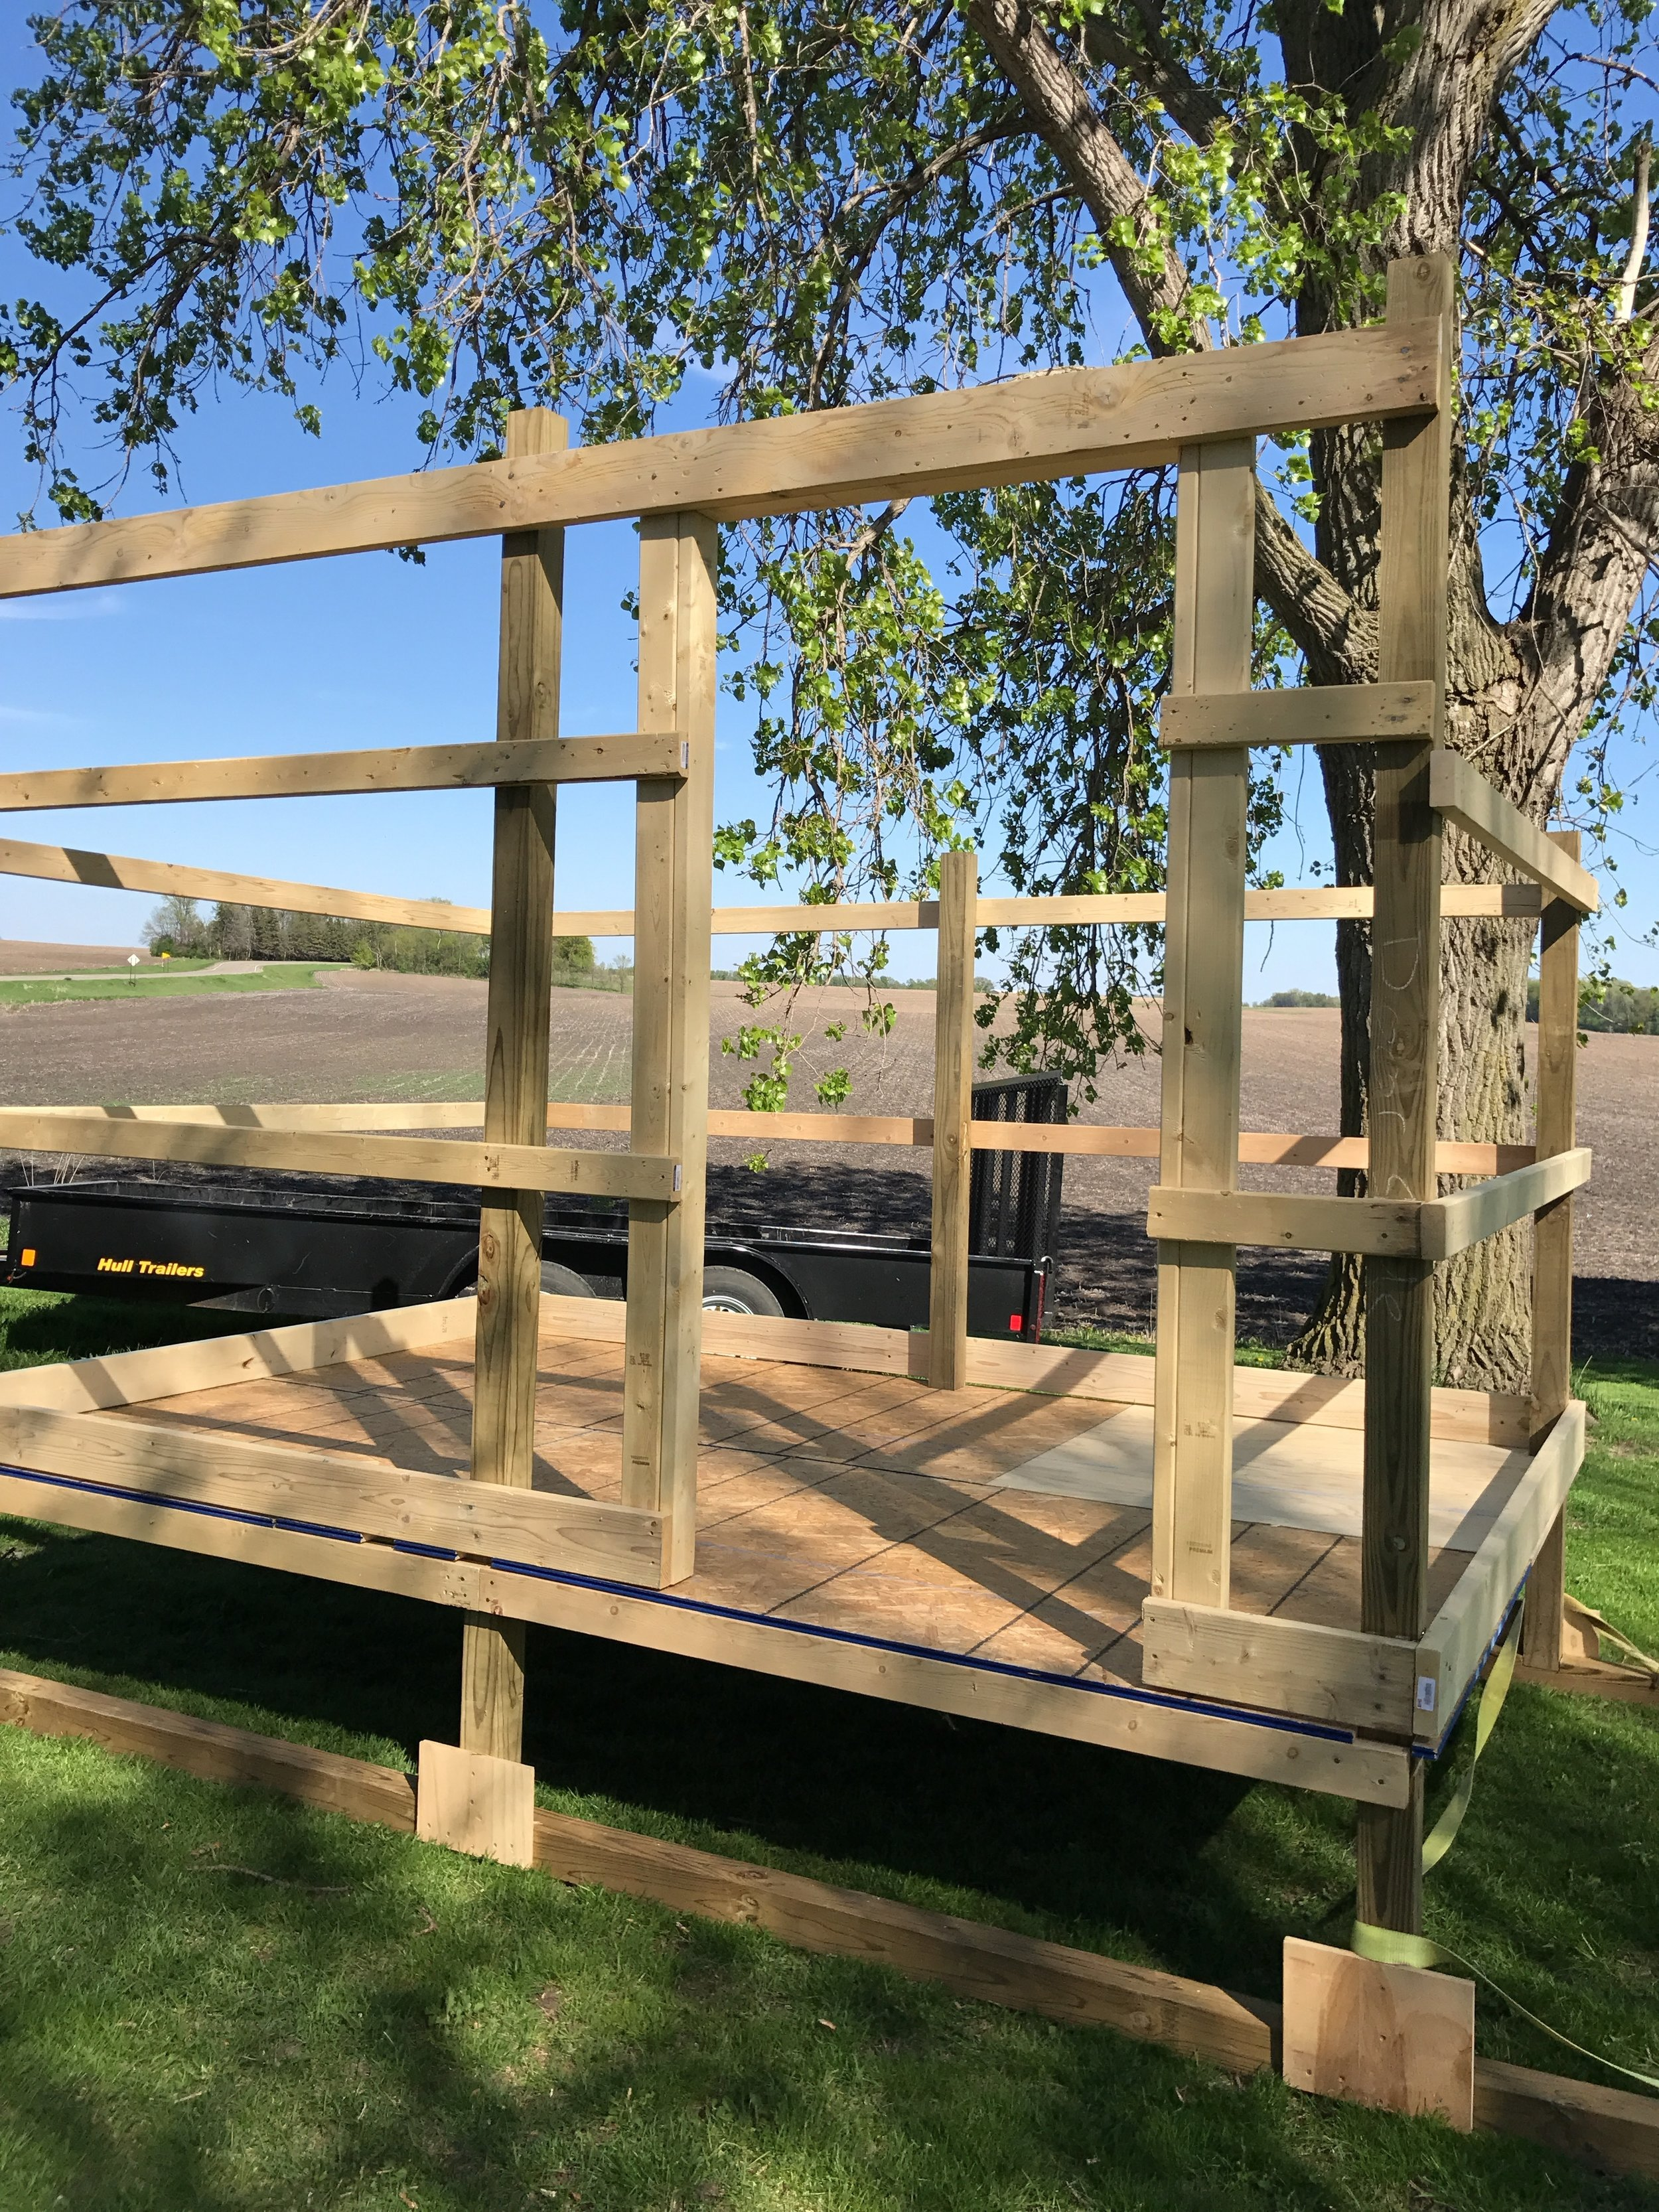 Bonus #2: Chicken coop under construction. It will be 12ft by 8ft when complete and be big enough to house 40 chickens. We plan on having 20 to start with.